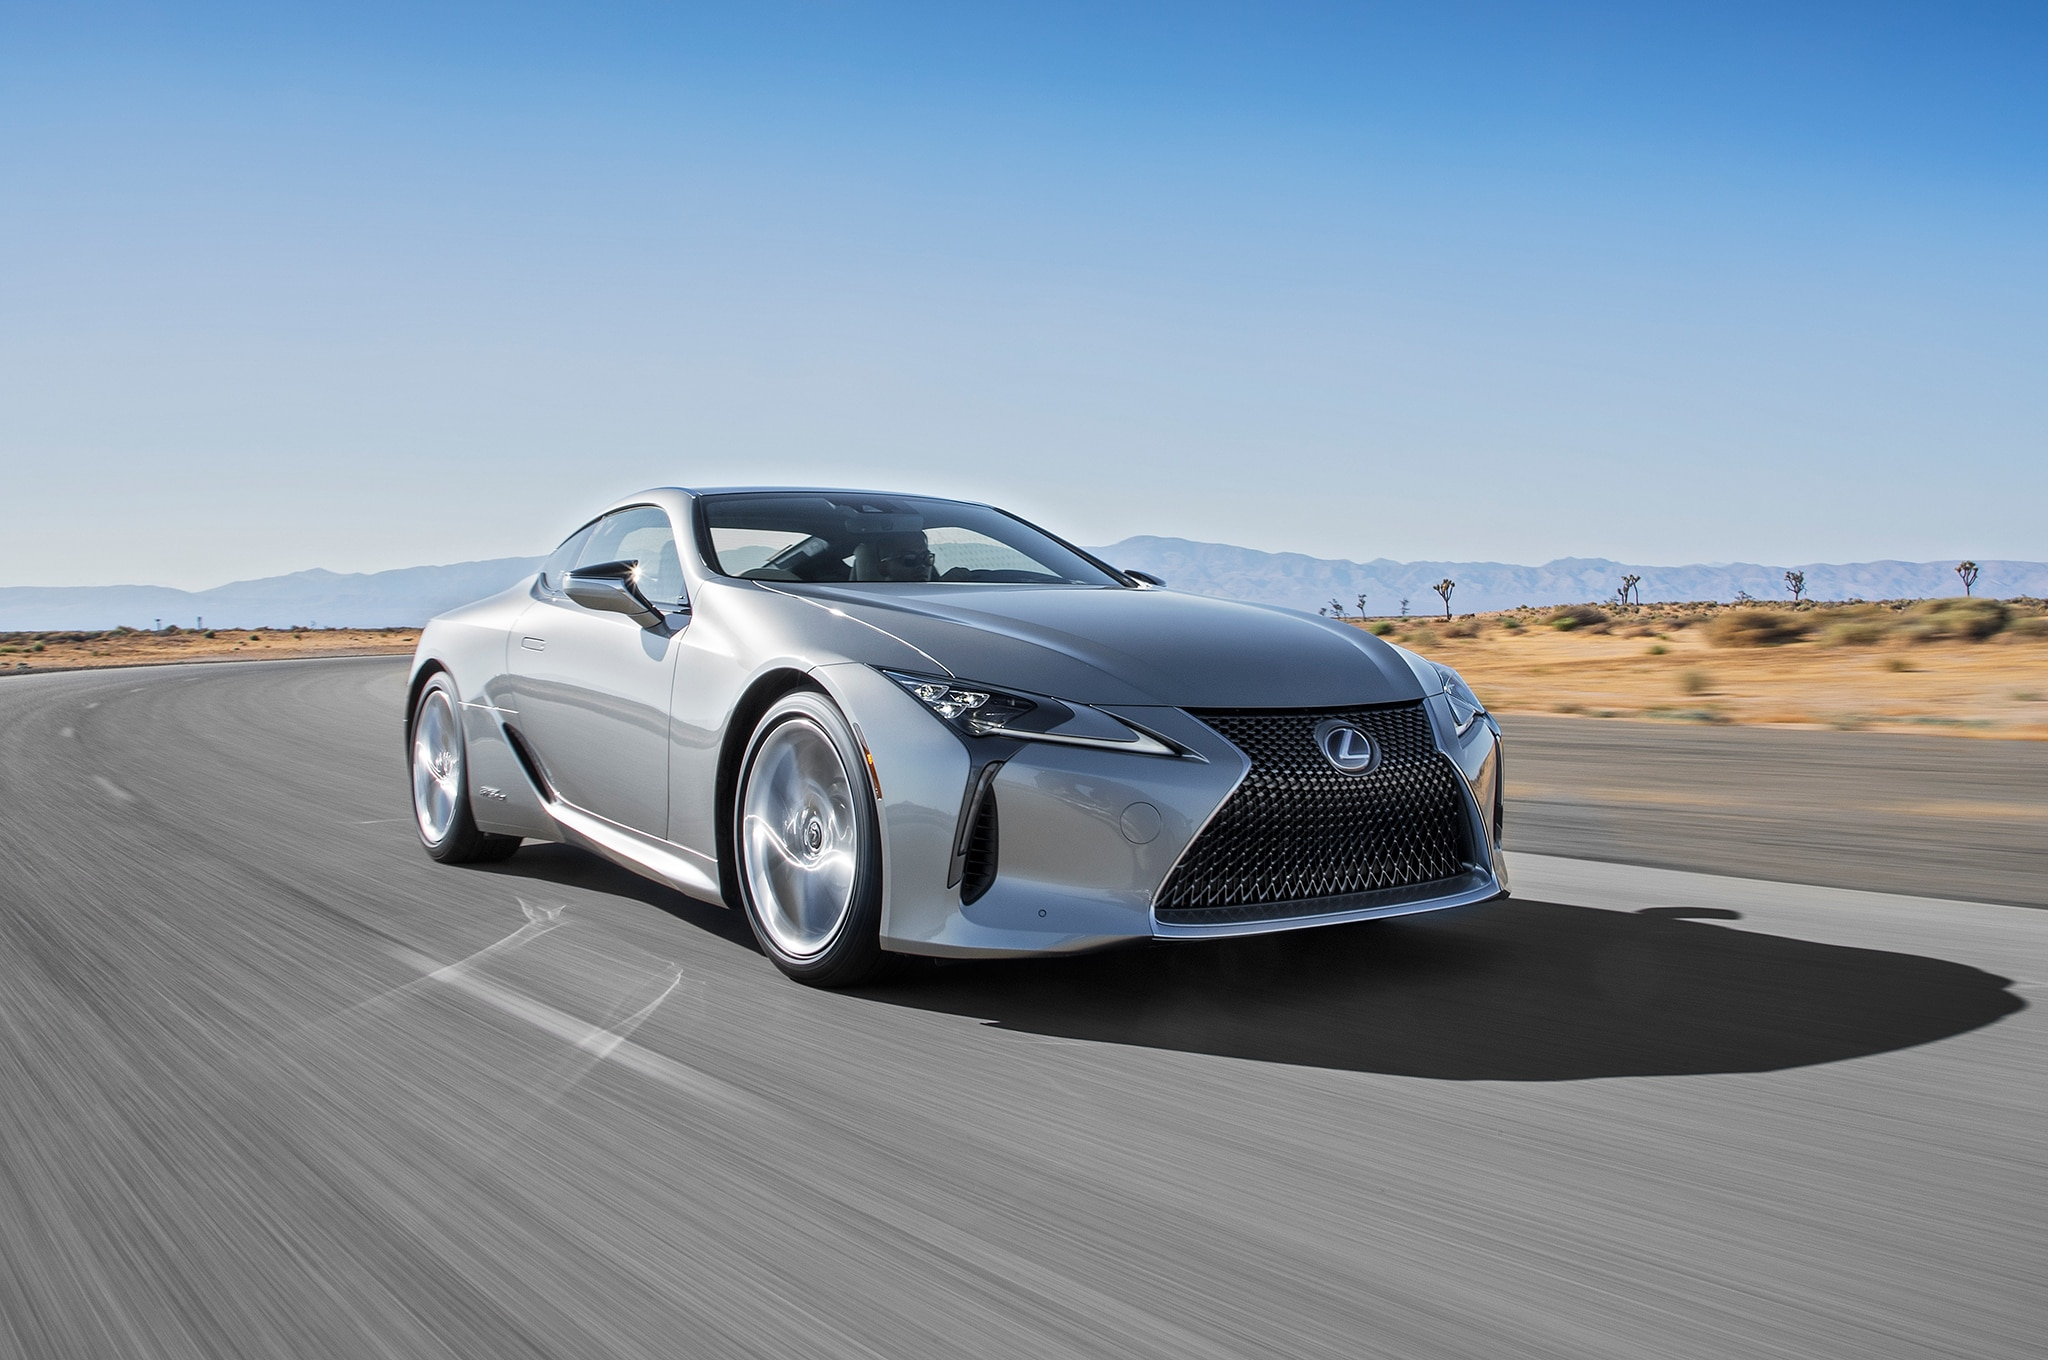 2017 Nissan Gt R Msrp >> Future Japanese Sports Cars: Nissan GT-R, Lexus SC, and Toyota Supra